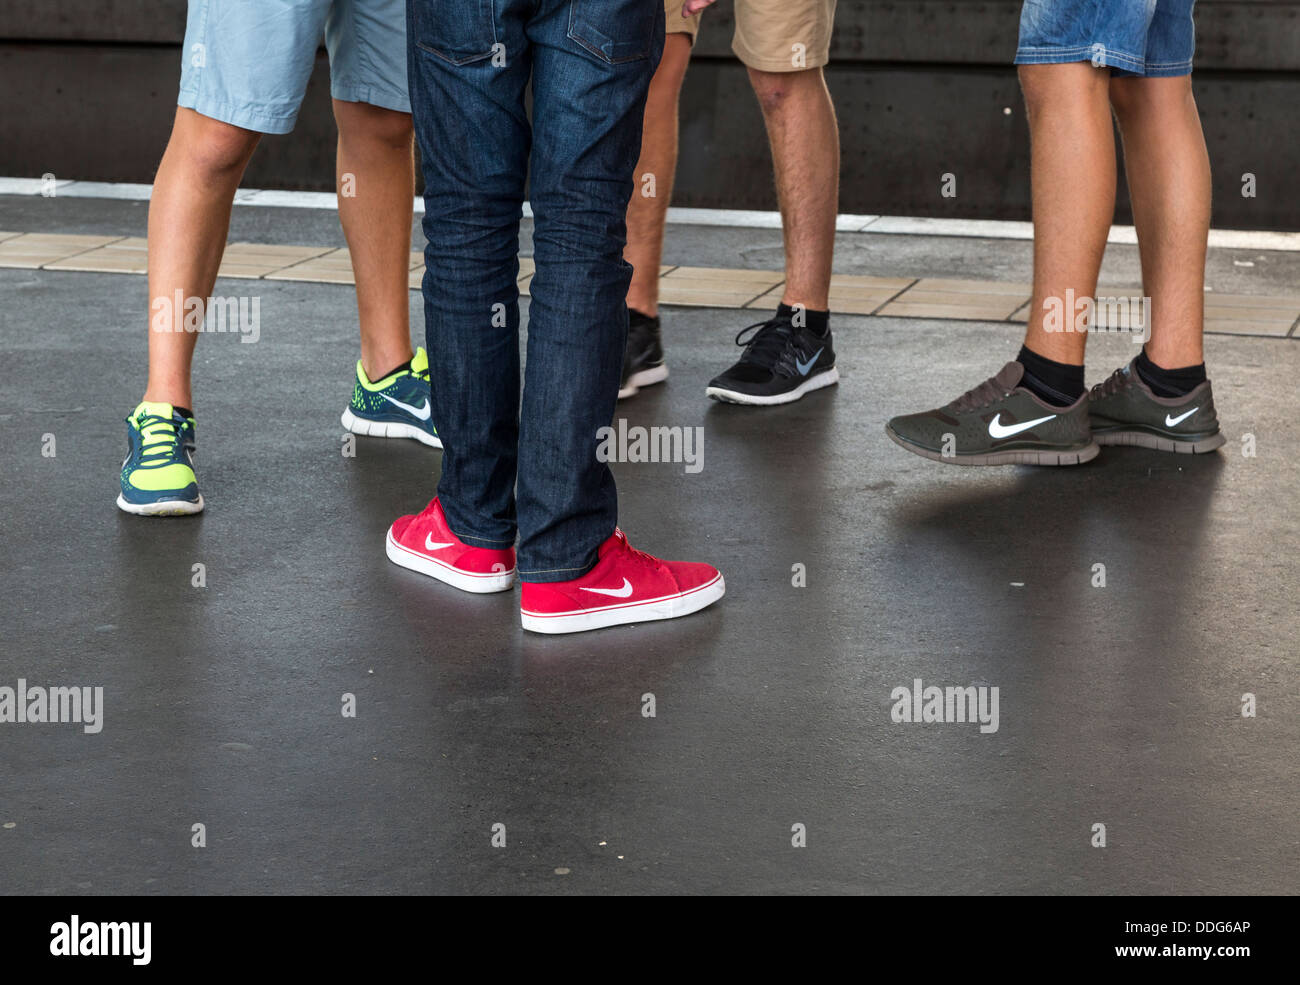 youths wearing Nike shoes, U-Bahn station, Berlin, Germany - Stock Image